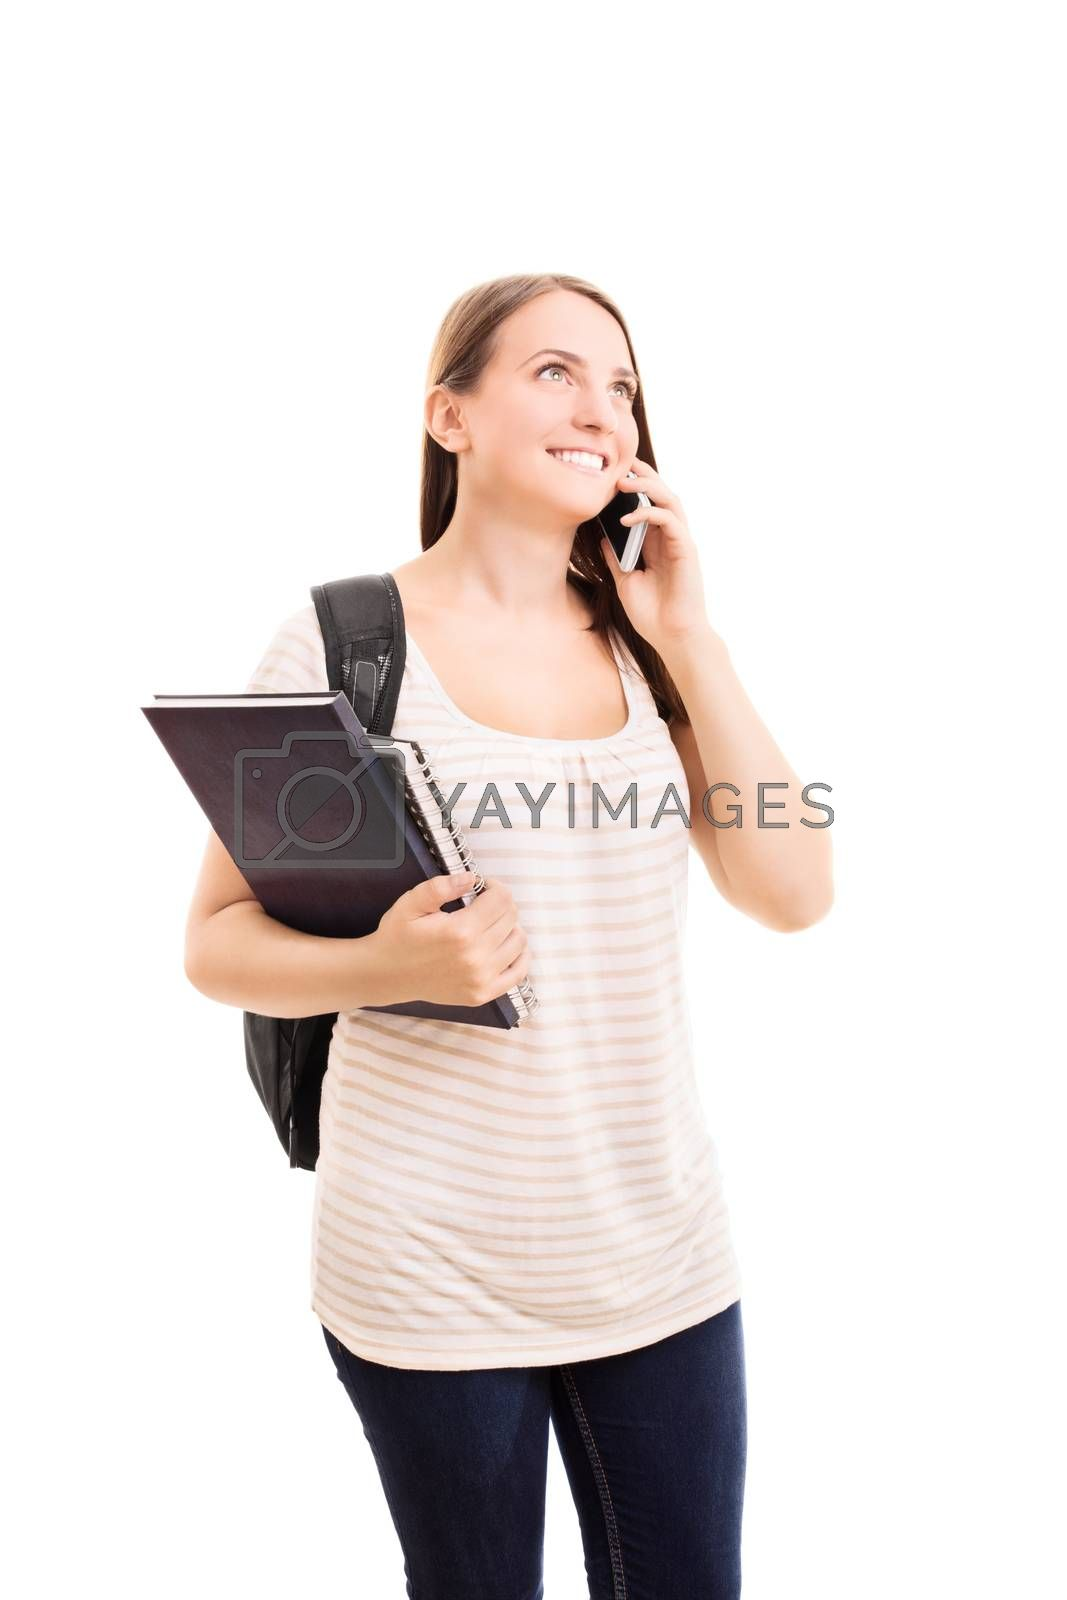 Smiling beautiful young student girl with a backpack, holding books and talking on a phone, isolated on white background.